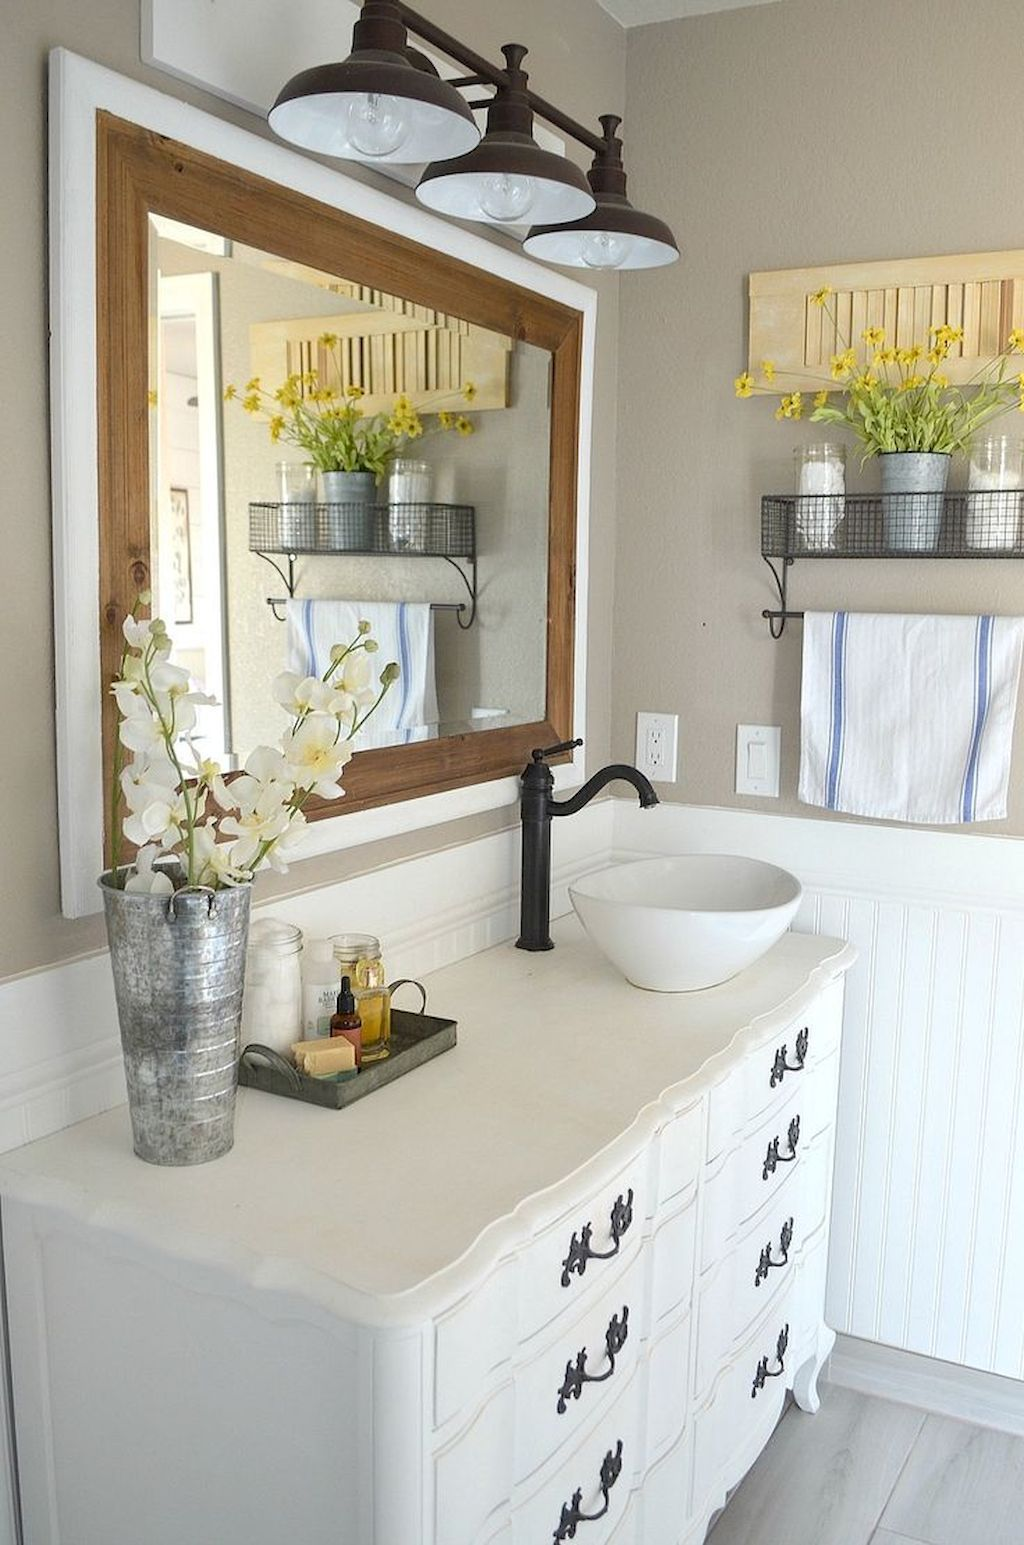 Badezimmer dekor bauernhaus vintage farmhouse bathroom remodel ideas on a budget